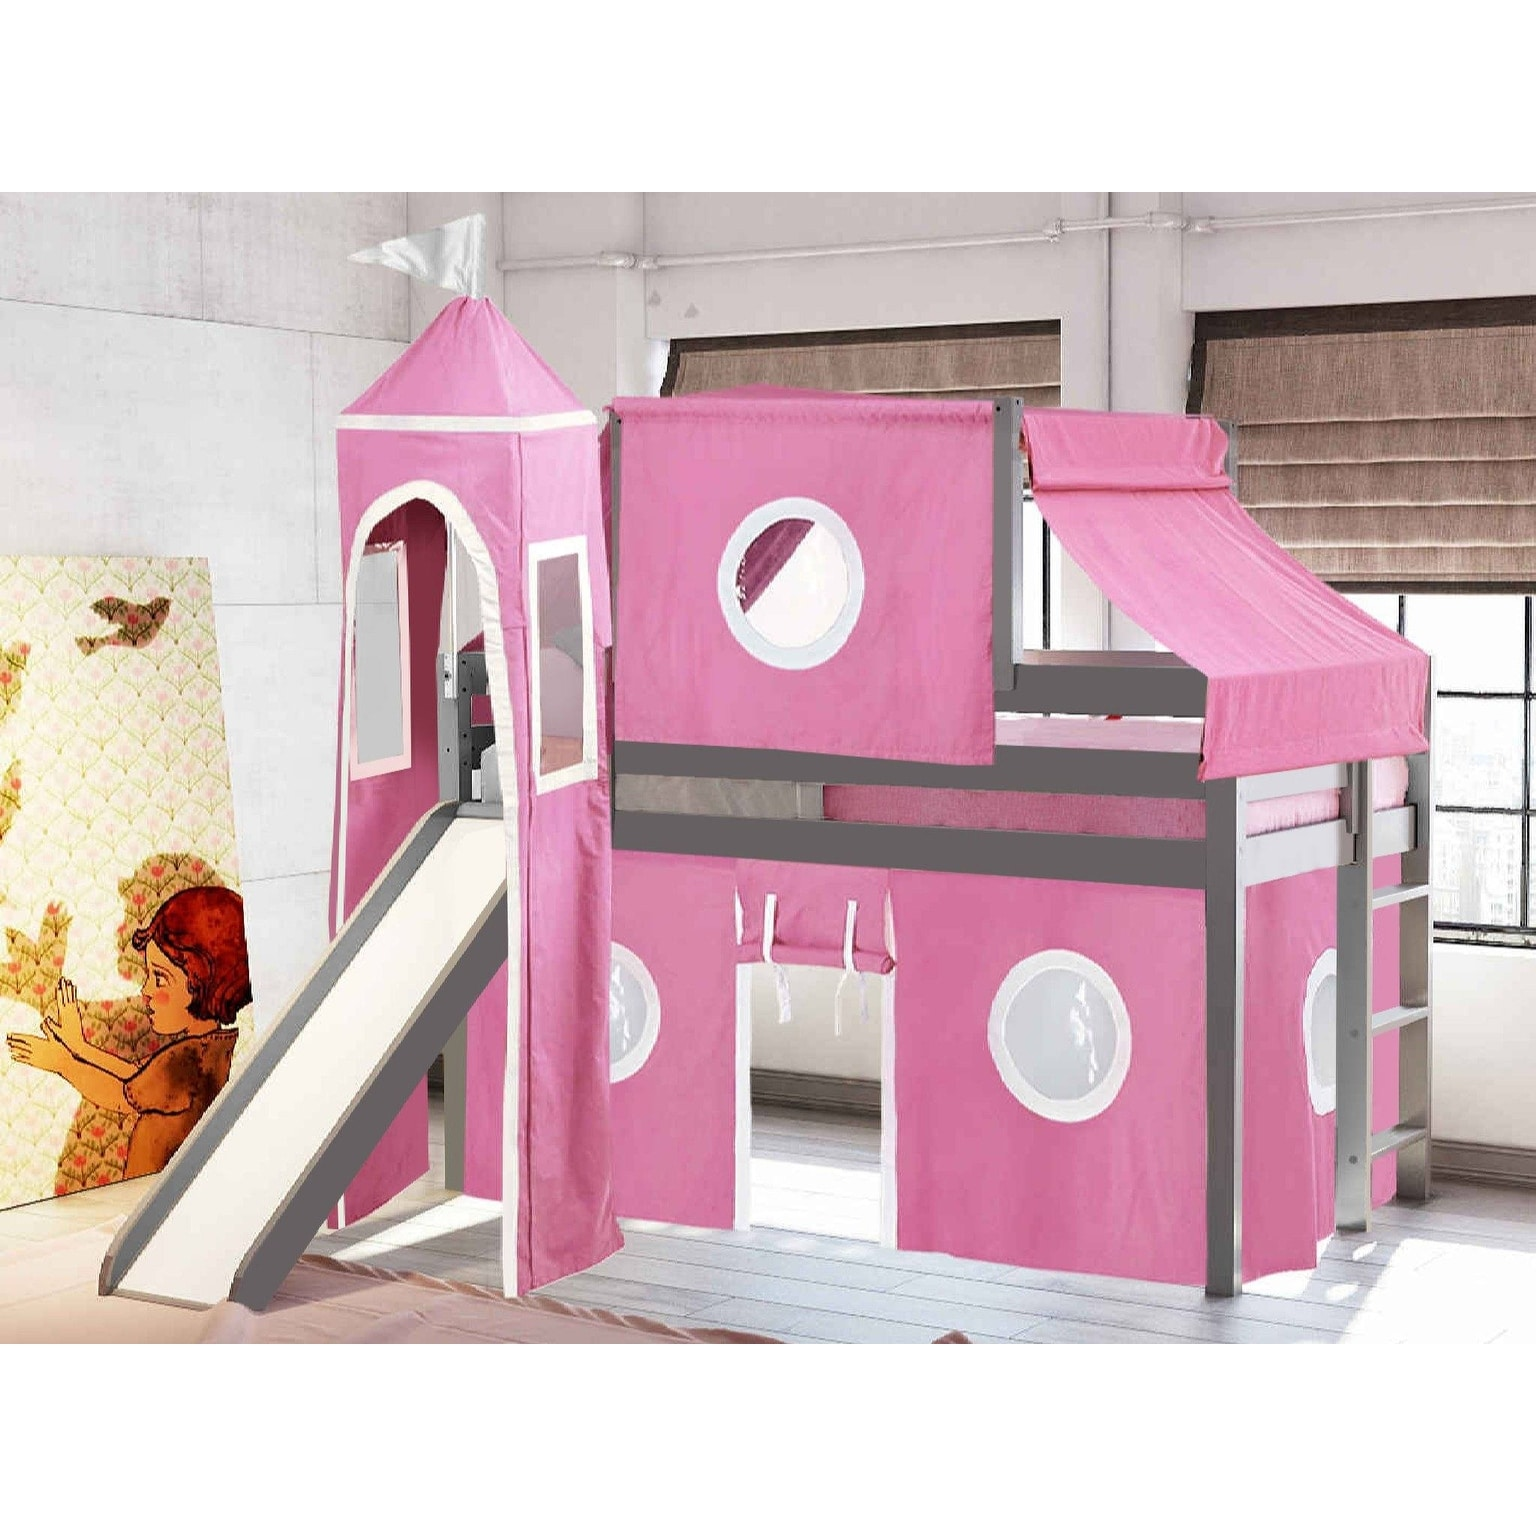 Jackpot Princess Low Loft Bed With Slide Pink White Tent And Tower Loft Bed Twin Gray Overstock 25490879